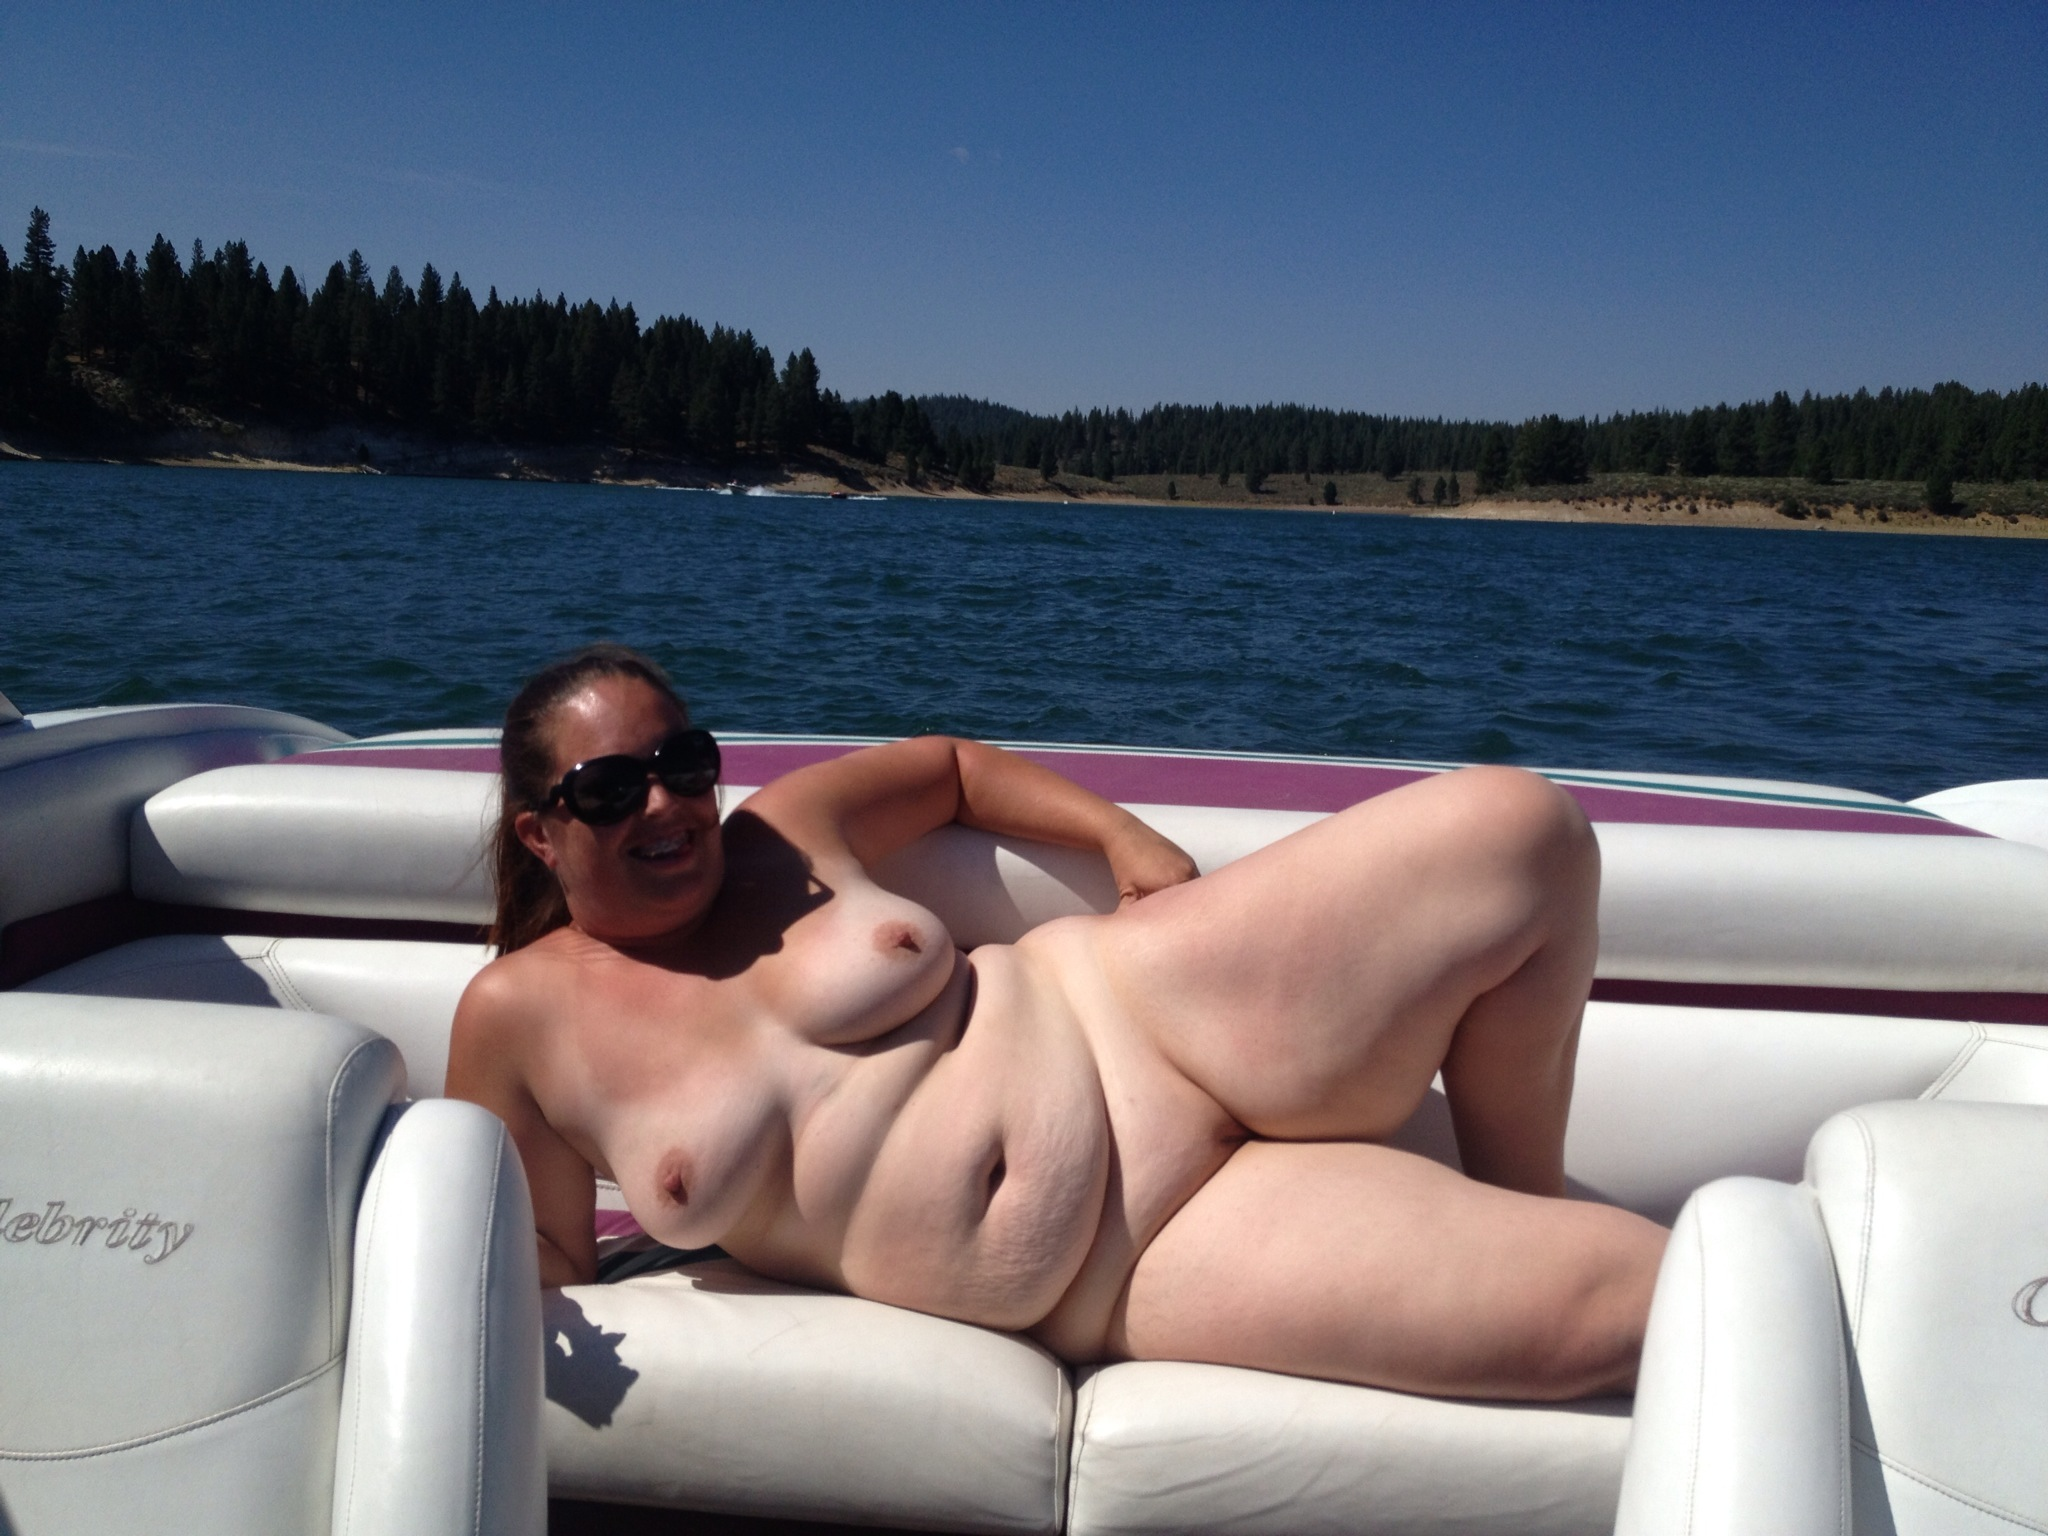 Free nude pics of women on boats that result